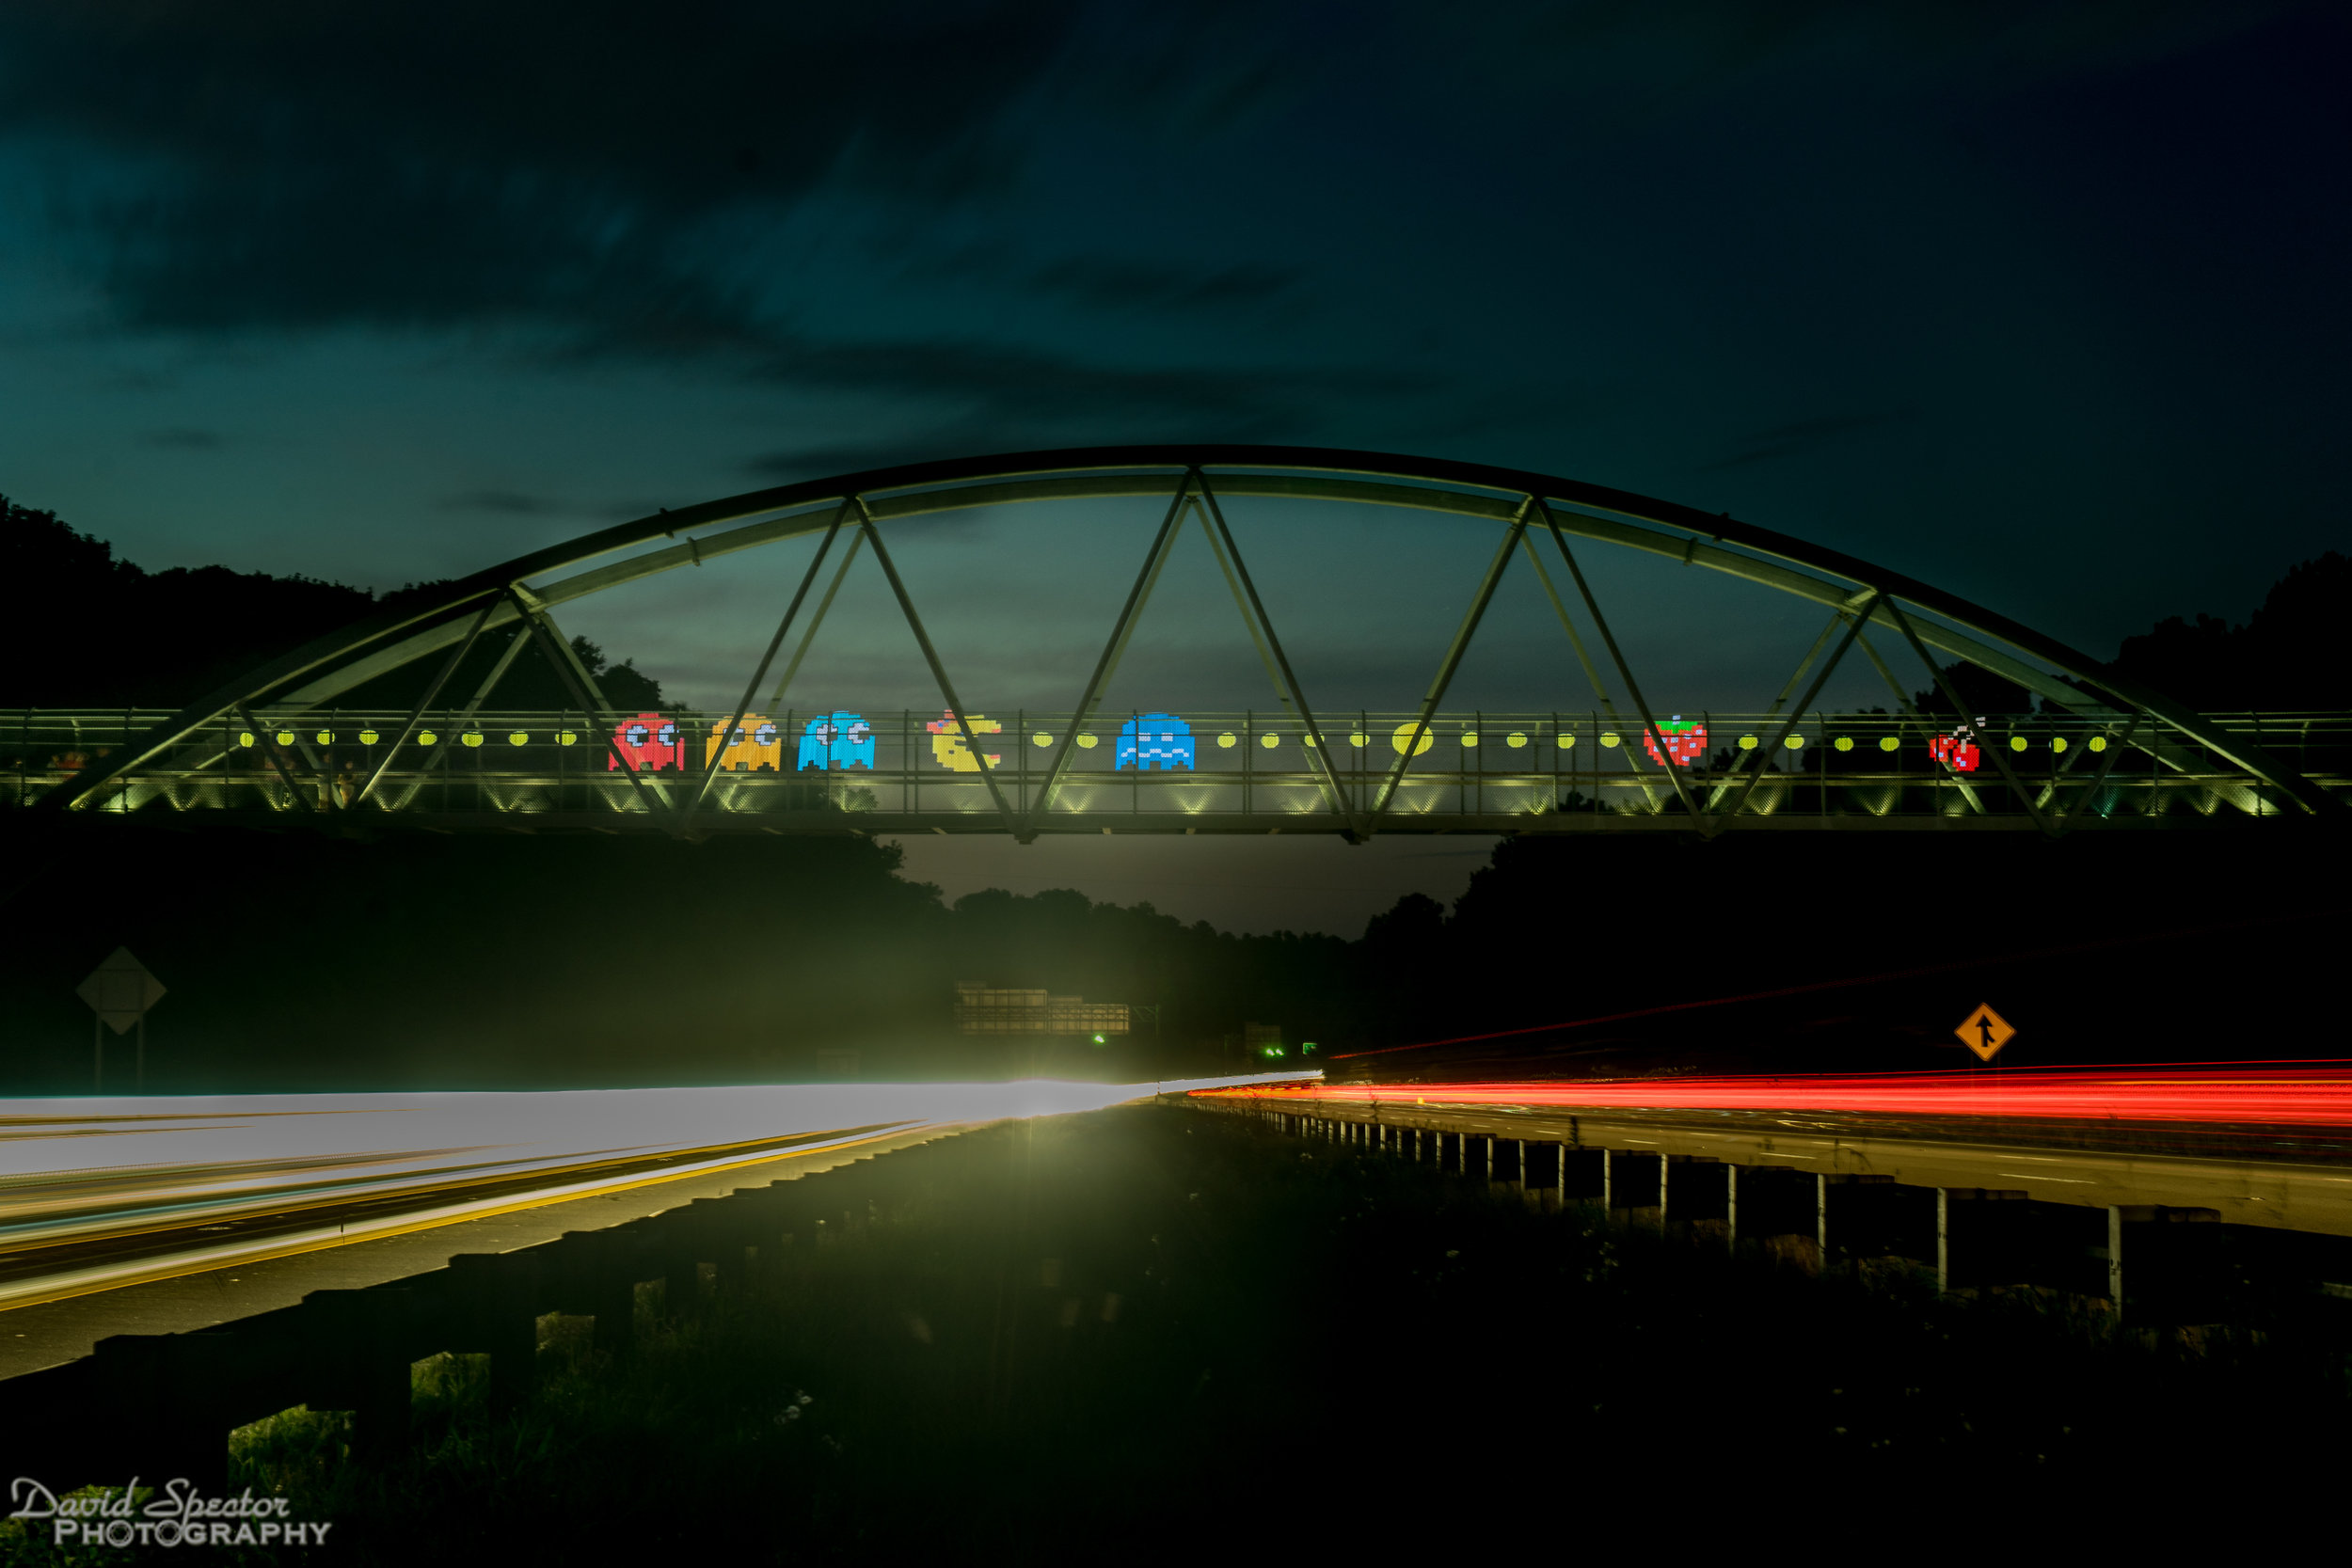 Johnny and I wanted to light paint at this bridge for a while. PacMan anyone?